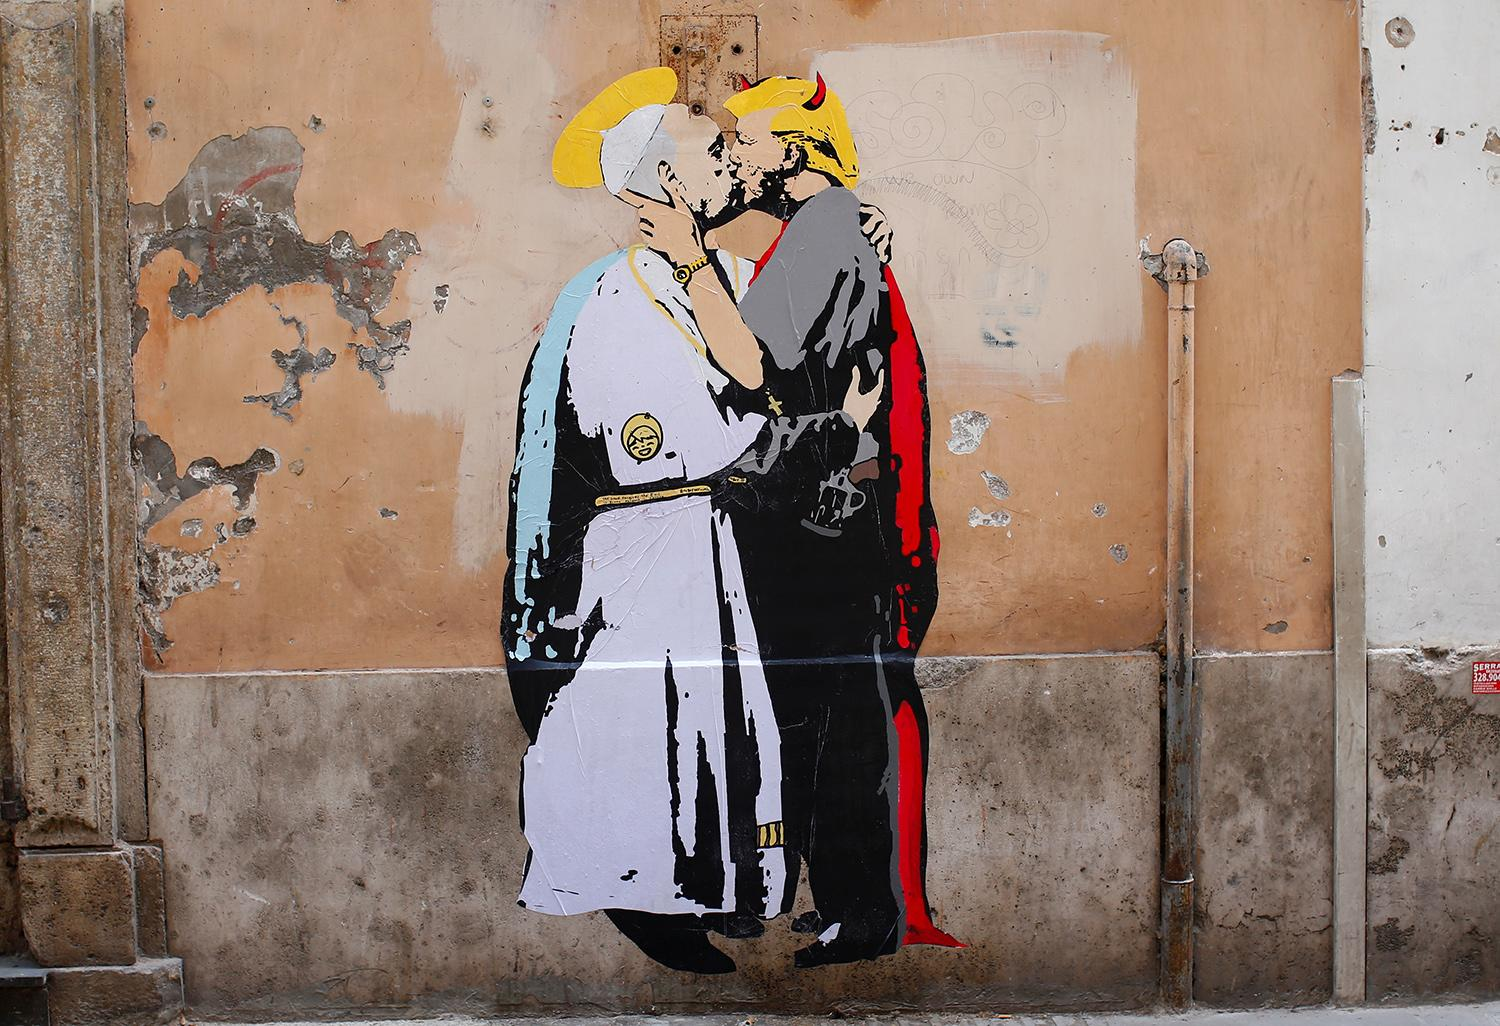 """<p>A mural signed by """"TV Boy"""" and depicting Pope Francis and U.S. President Donald Trump kissing, is seen on a wall in downtown Rome, Italy May 11, 2017. (Photo: Tony Gentile/Reuters) </p>"""